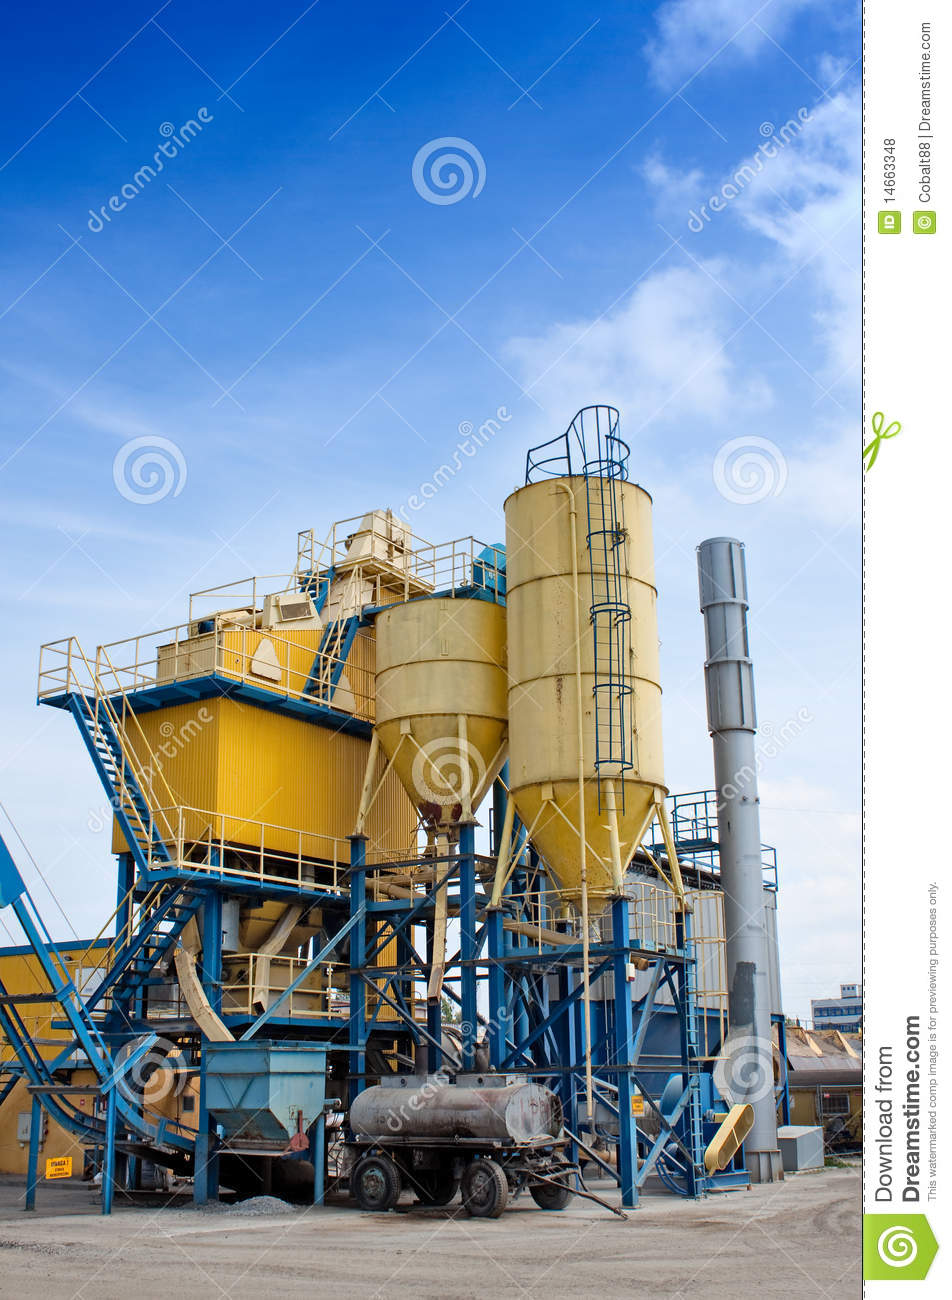 Cement Factory Stock Photo. Image Of Sand, Gravel, Tube